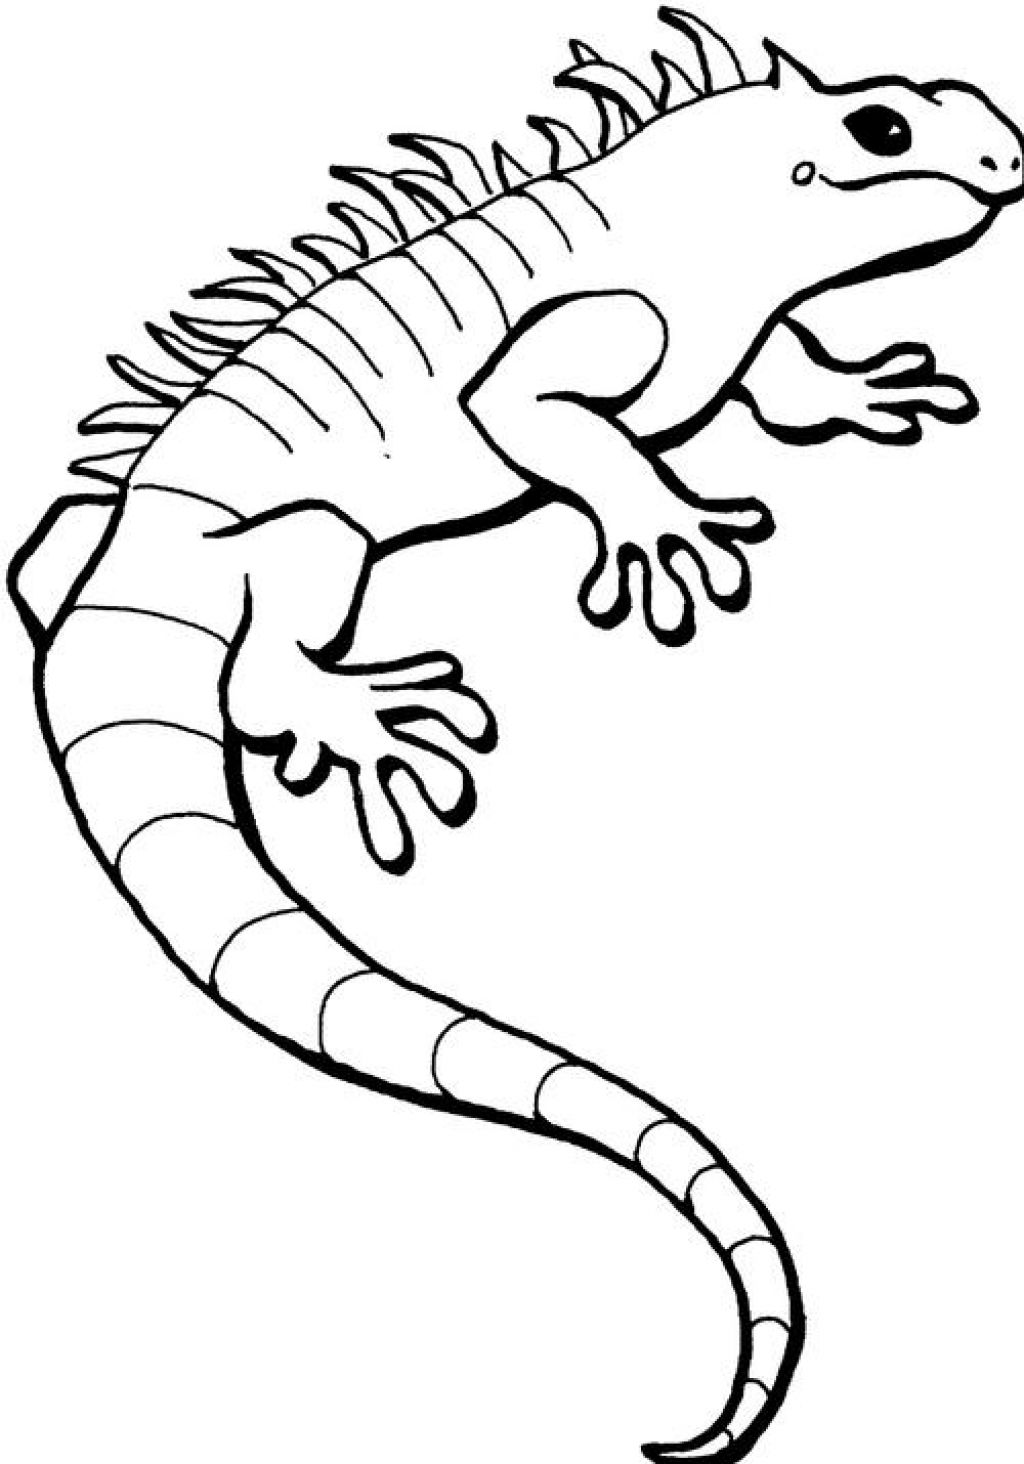 Free printable iguana coloring pages for kids Coloring book for kinder